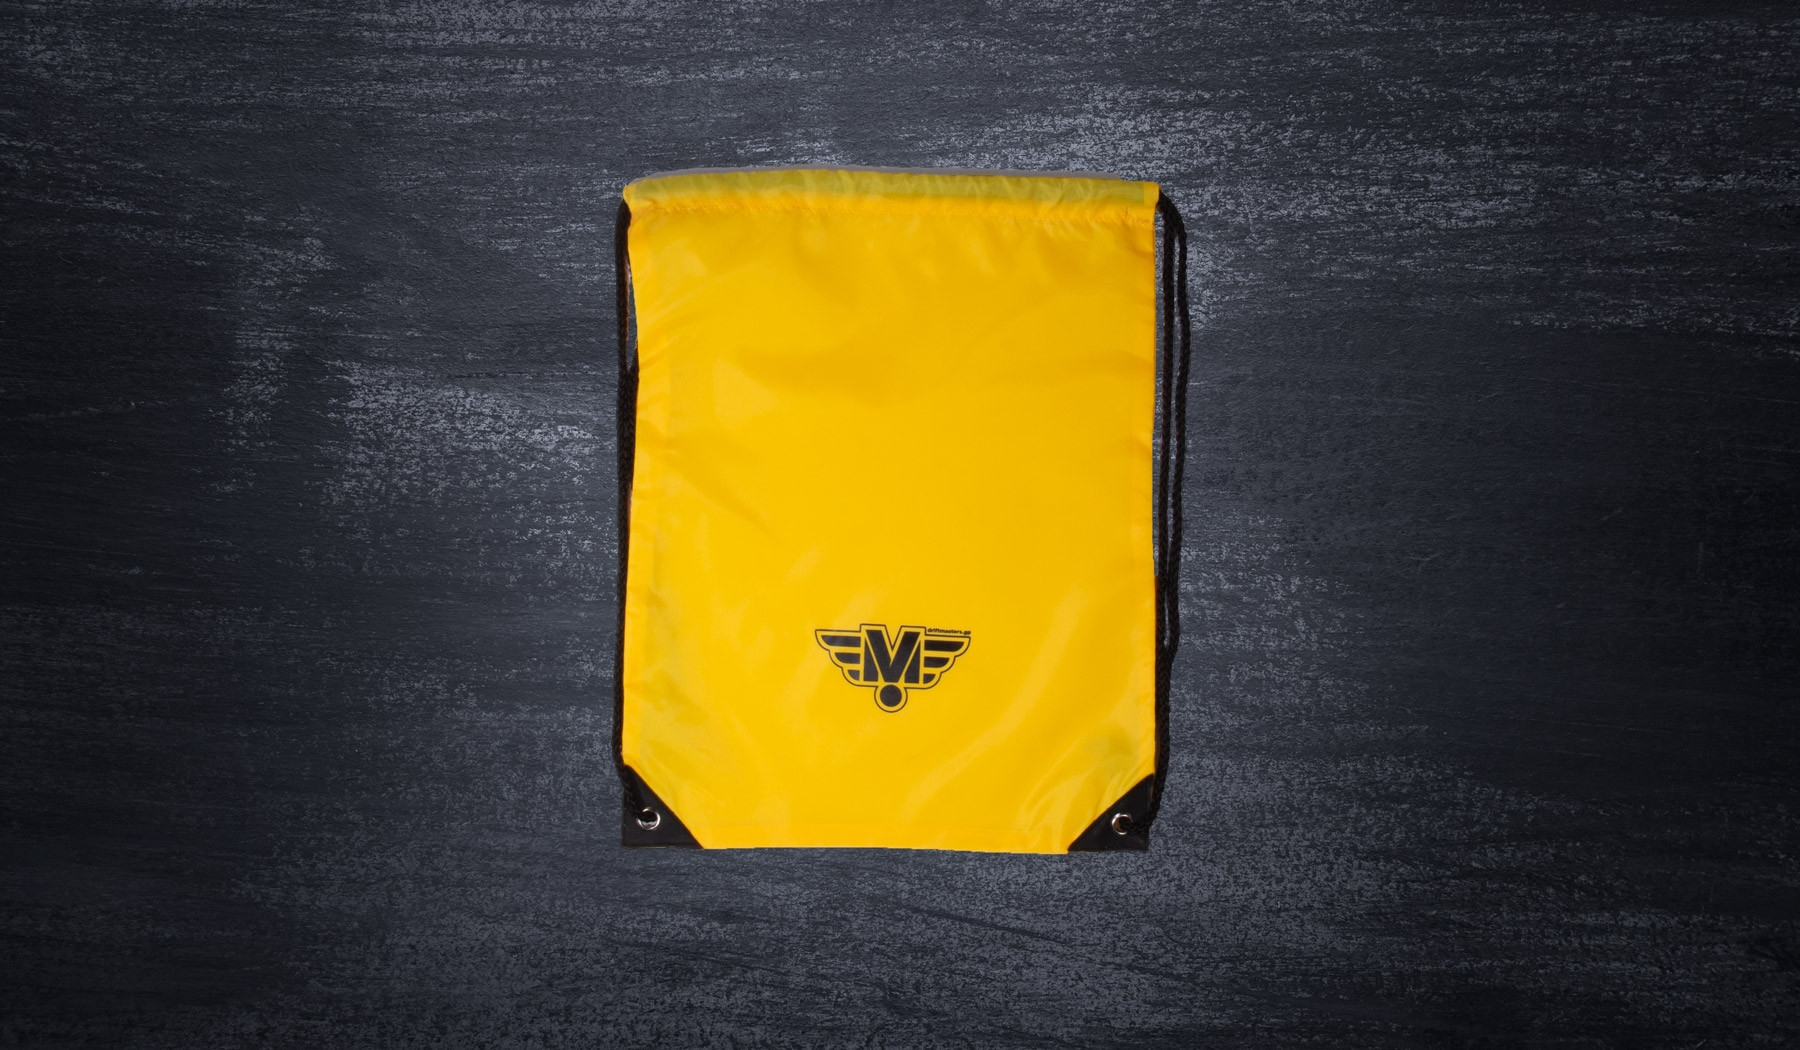 DMEC grab bag yellow